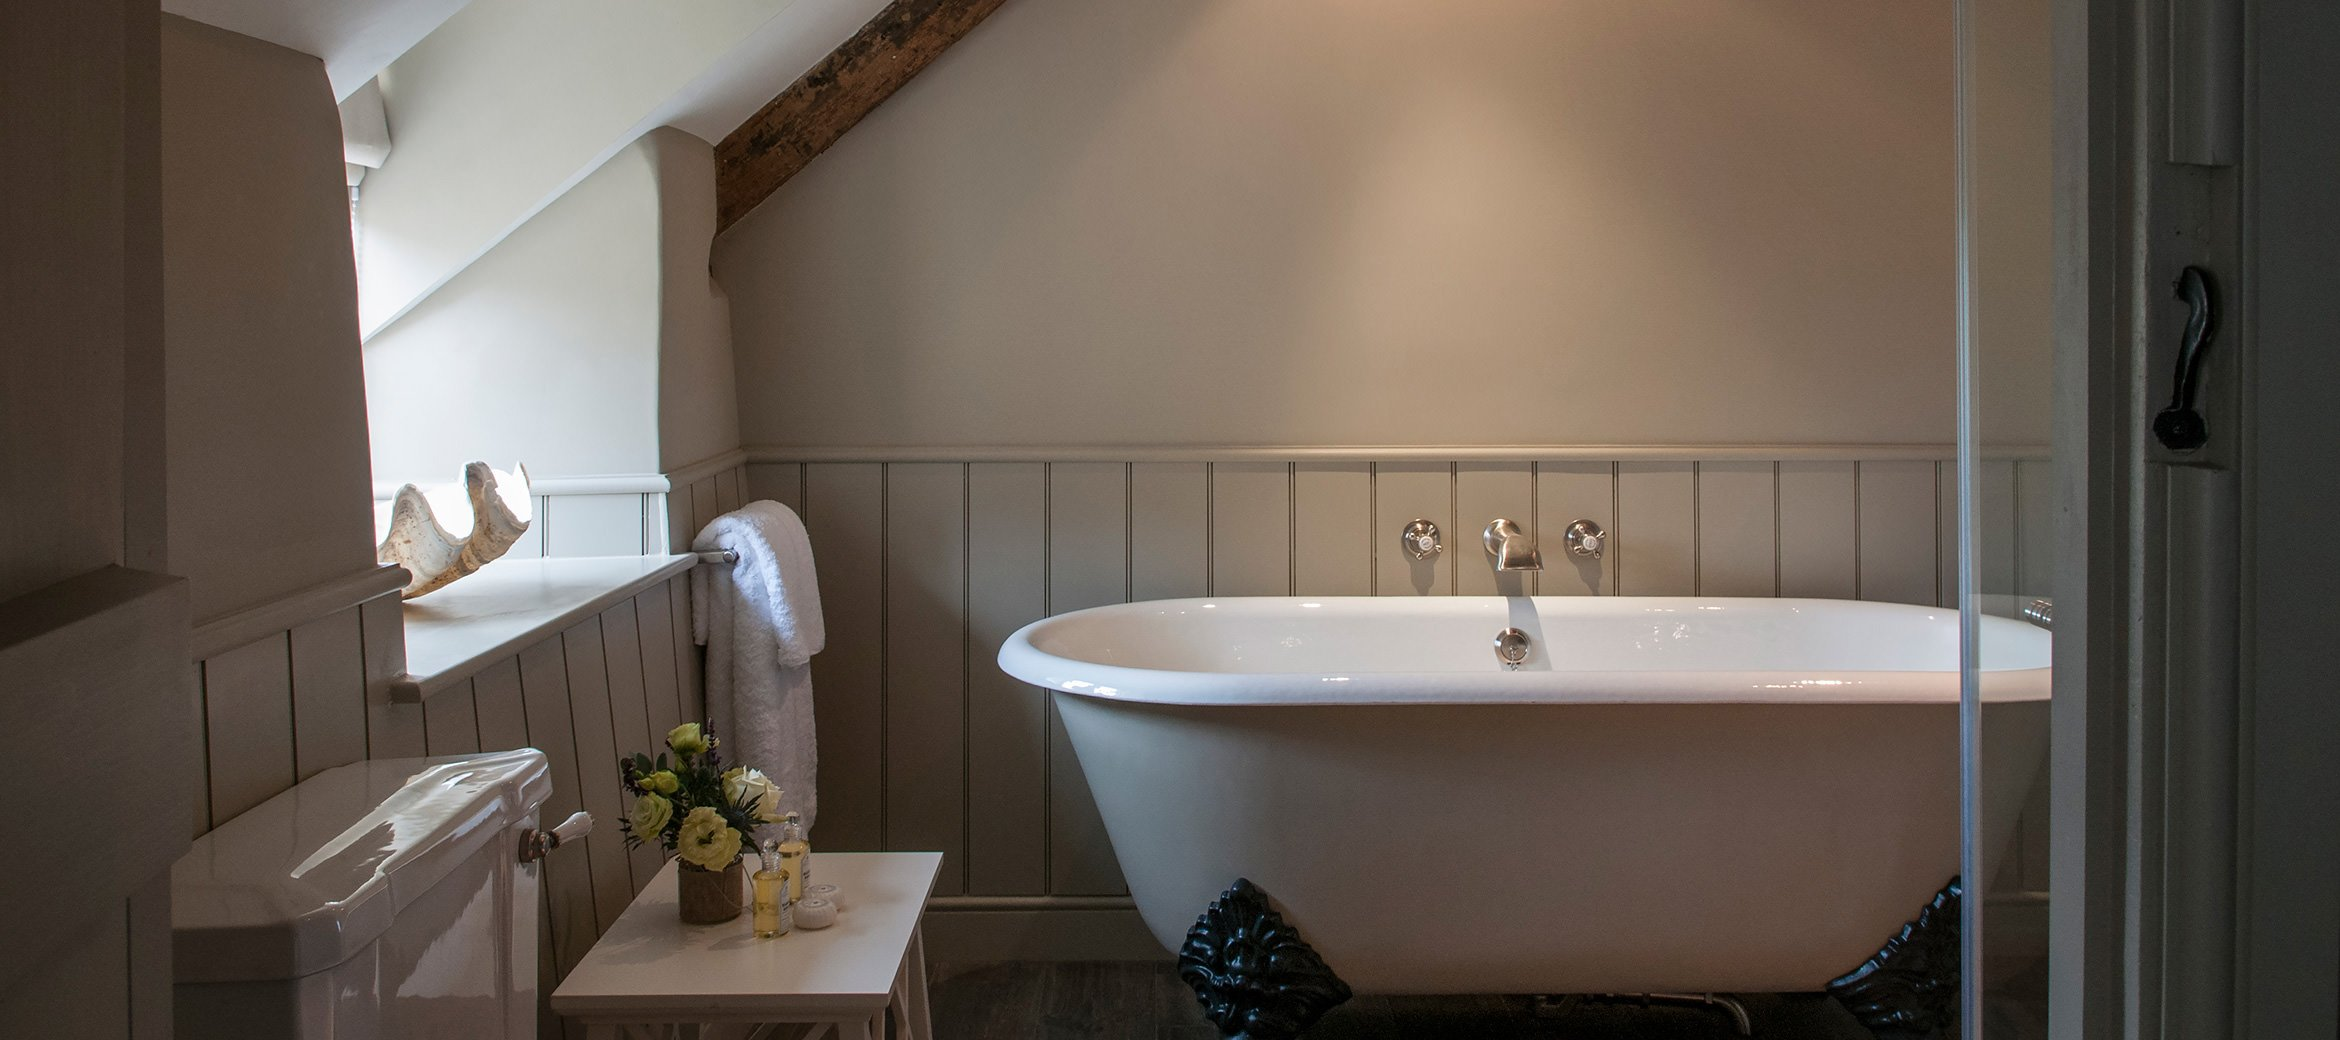 Dovecote Cottage Luxury Cotswold Rentals Luxury